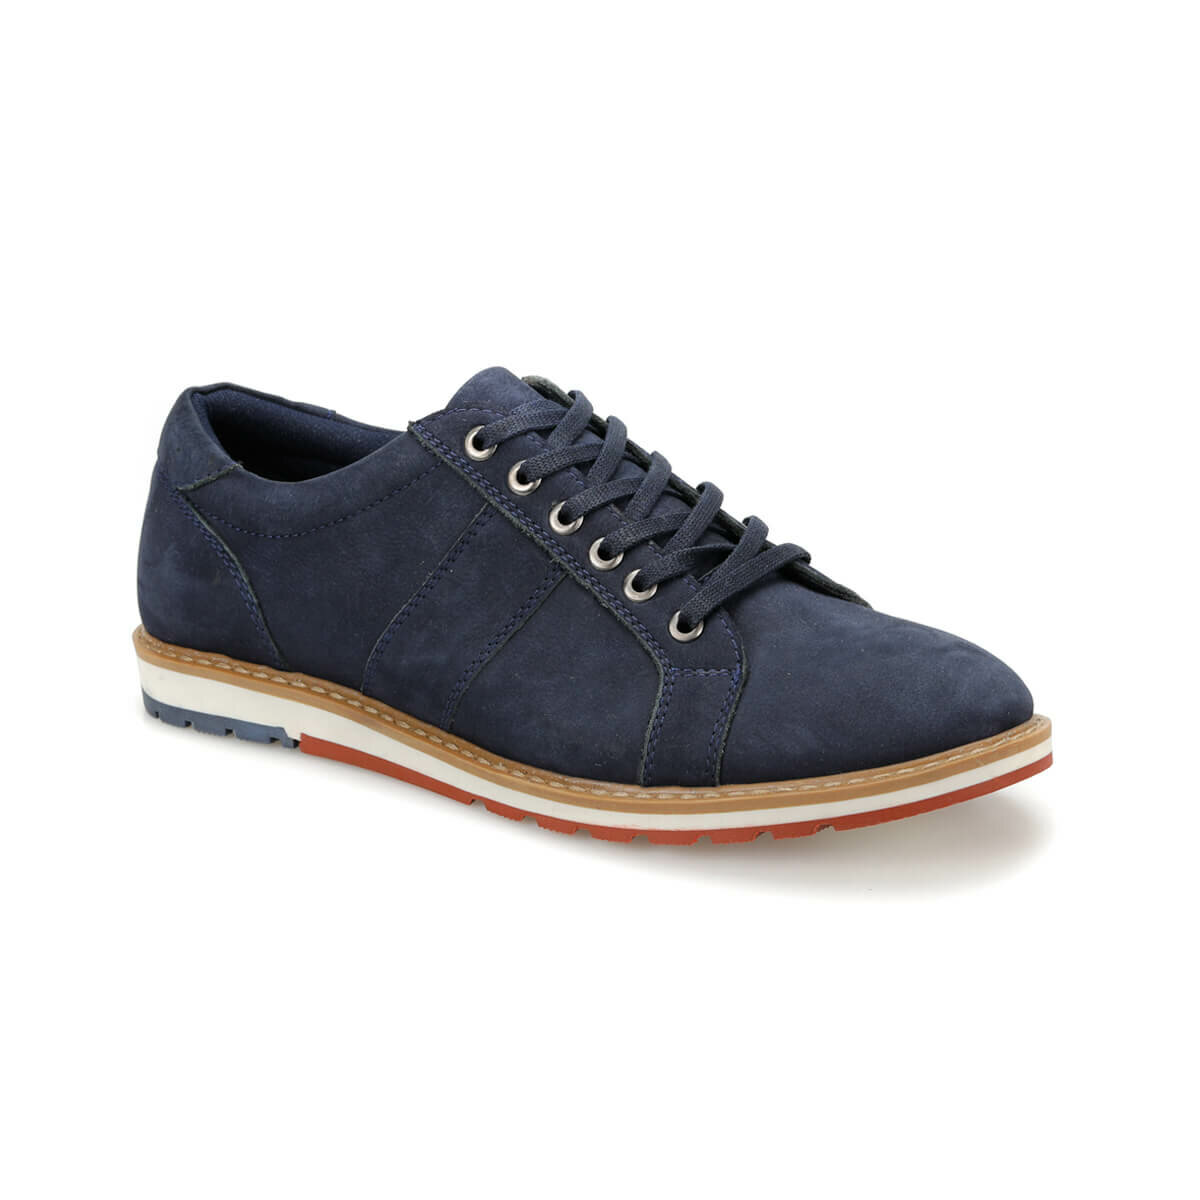 FLO MKM-91115 Navy Blue Men 'S Shoes Oxide